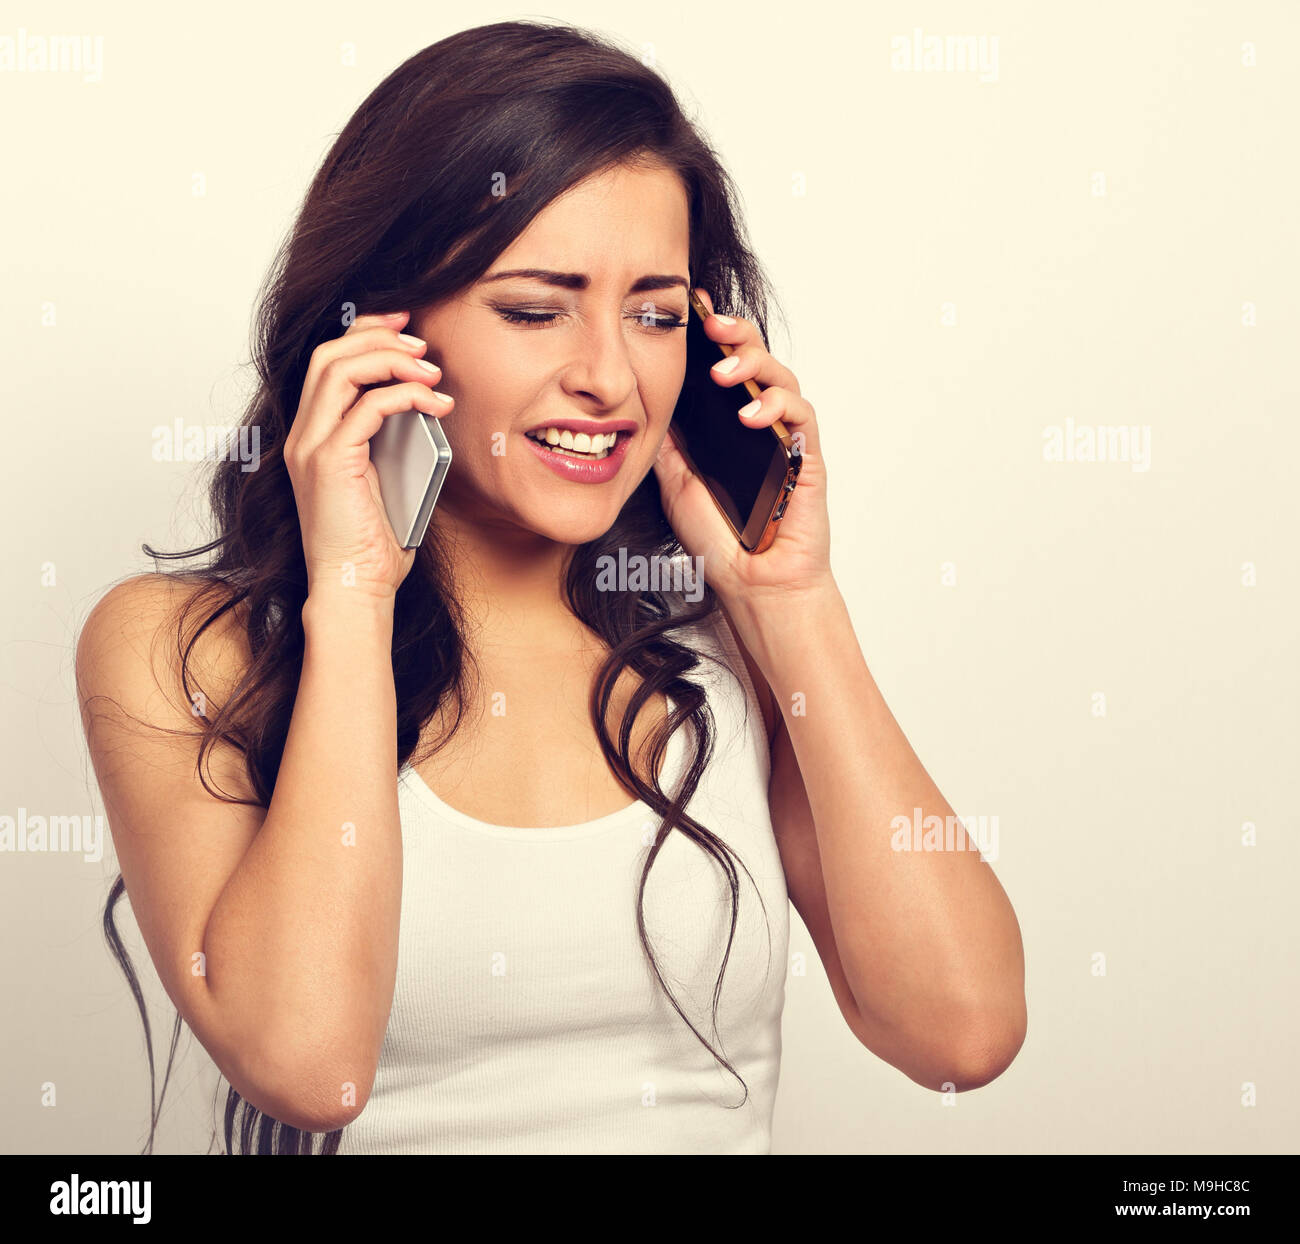 Unhappy angry stressed woman holding two mobile phones near